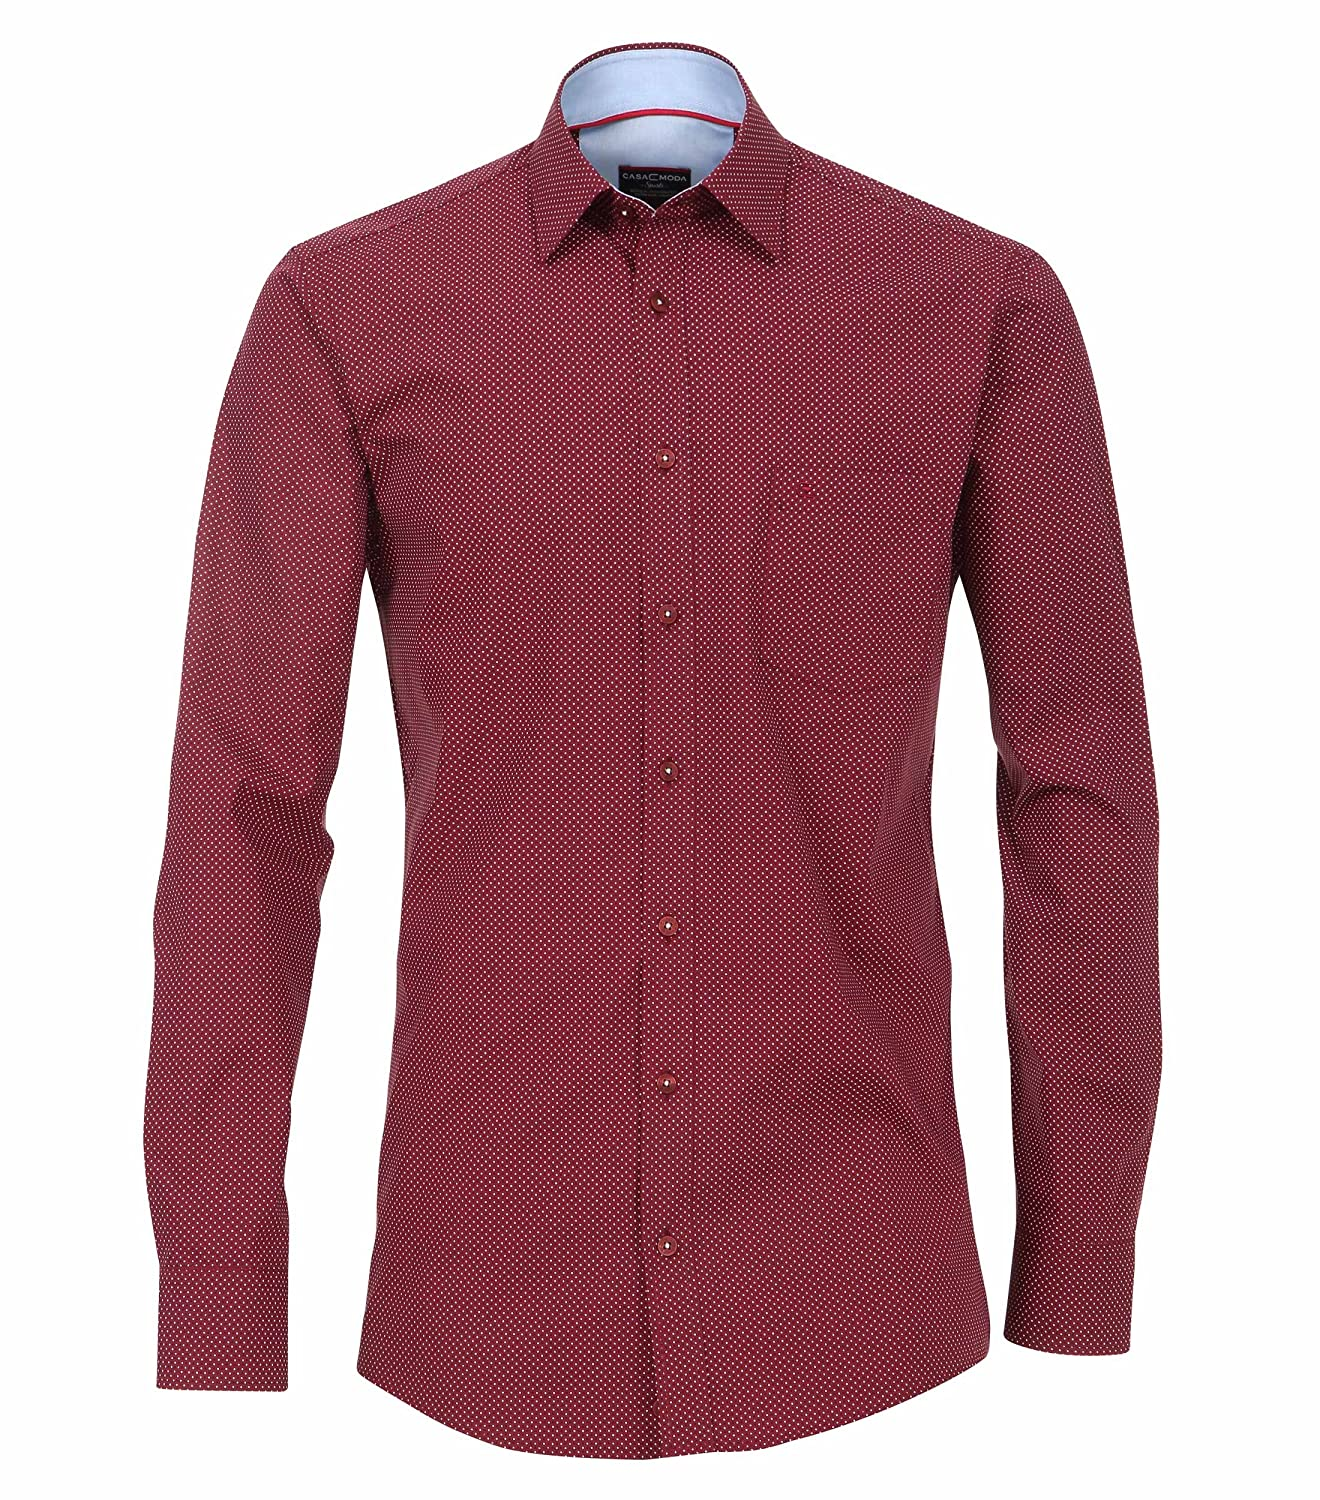 MichaelaX-Fashion-Trade - Camisa Formal - Cuadrados - Clásico - Manga Larga - para Hombre